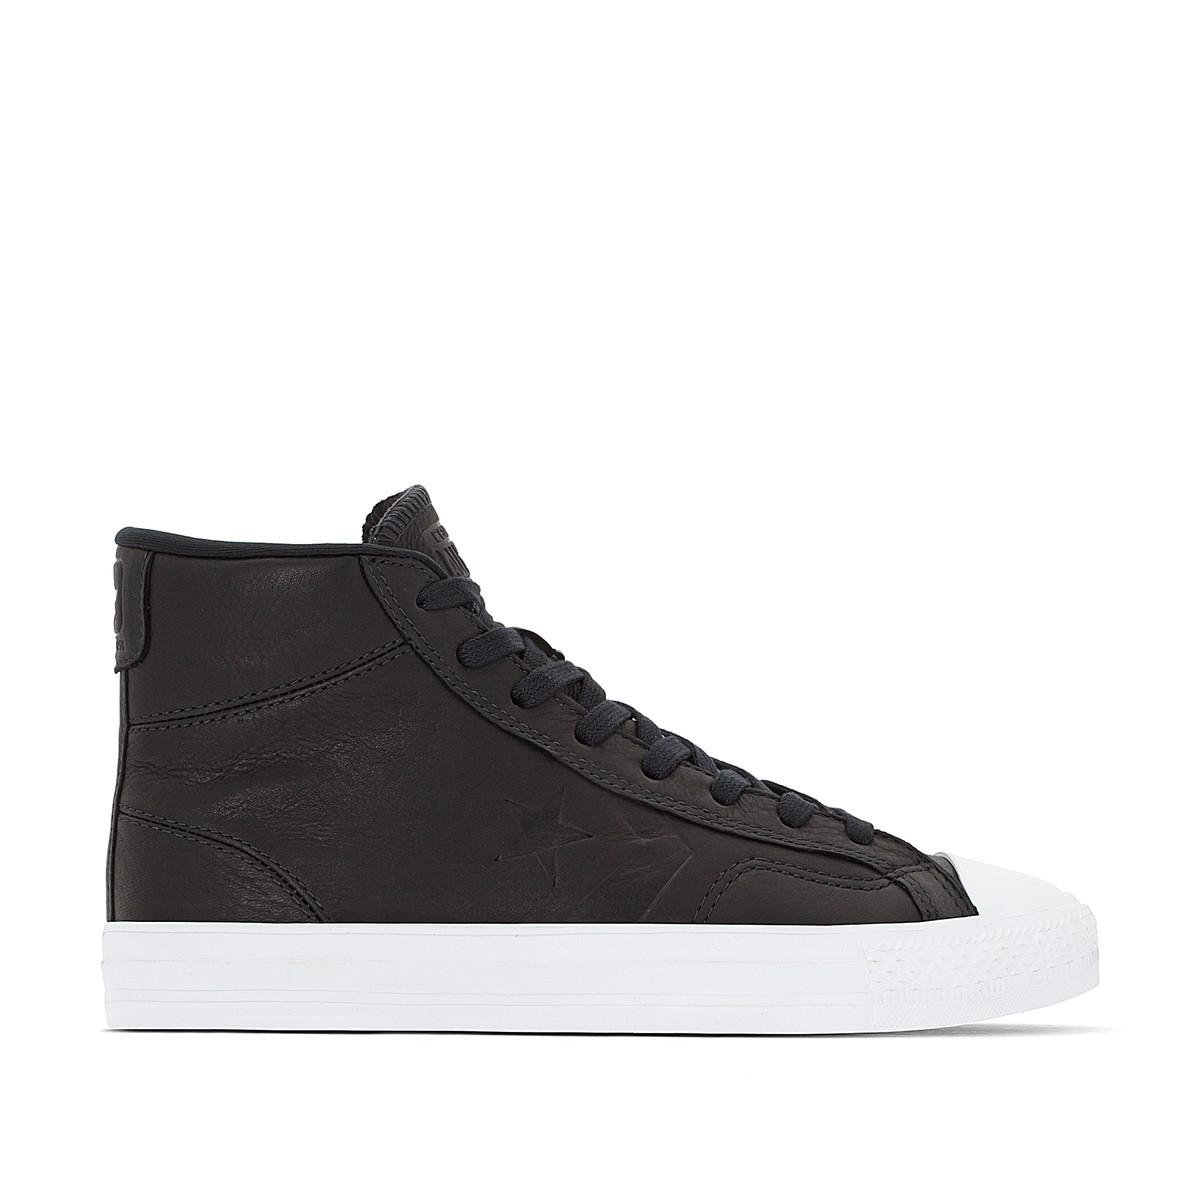 100% guaranteed cheap price CONVERSE Star Player Leather Hi High Top Trainers online Shop ncVMYw